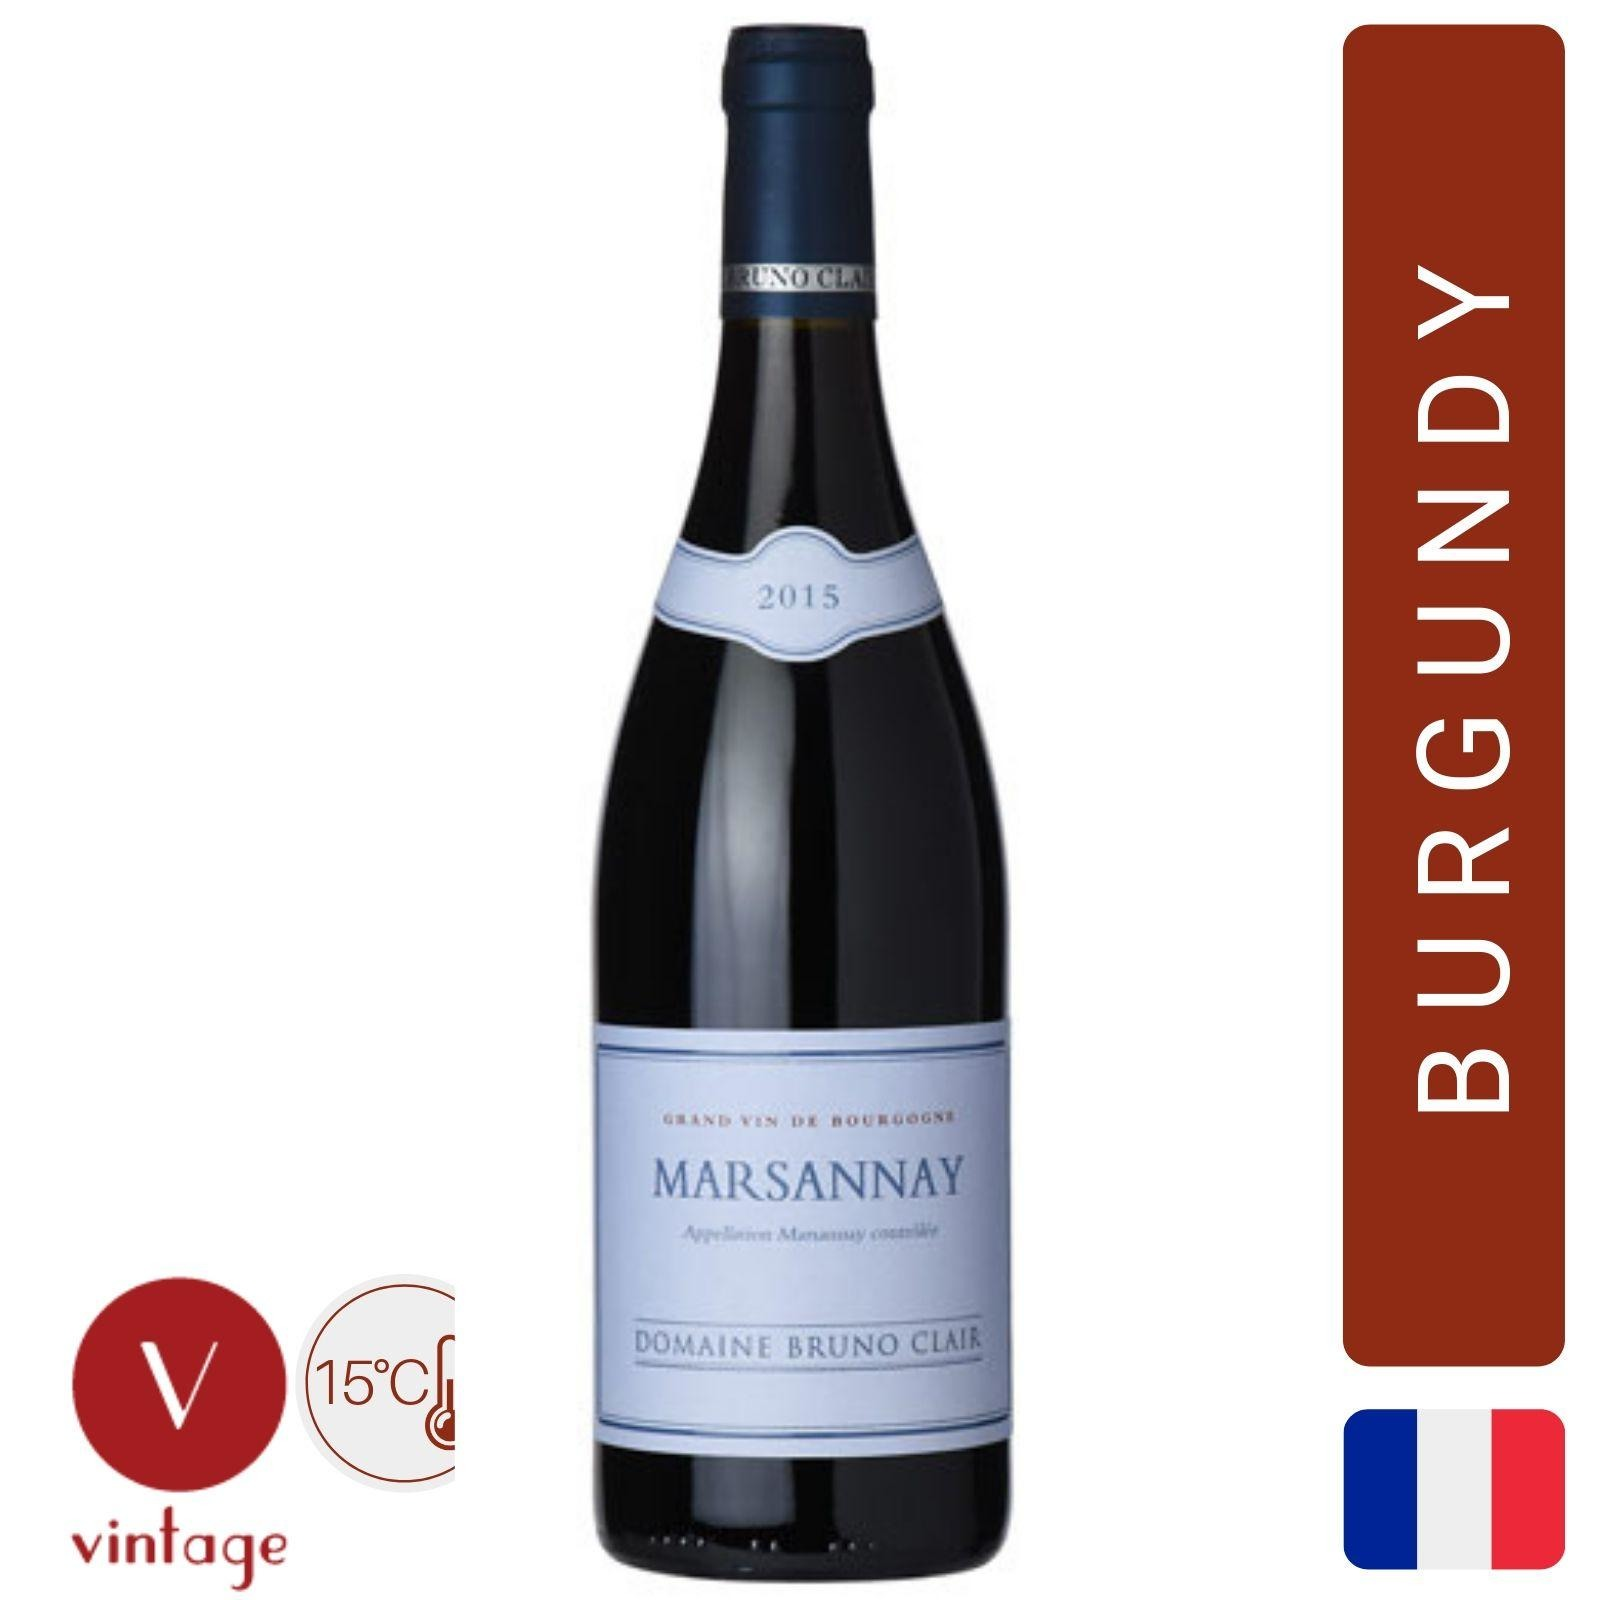 Domaine Bruno Clair - Marsannay - Burgundy Red Wine